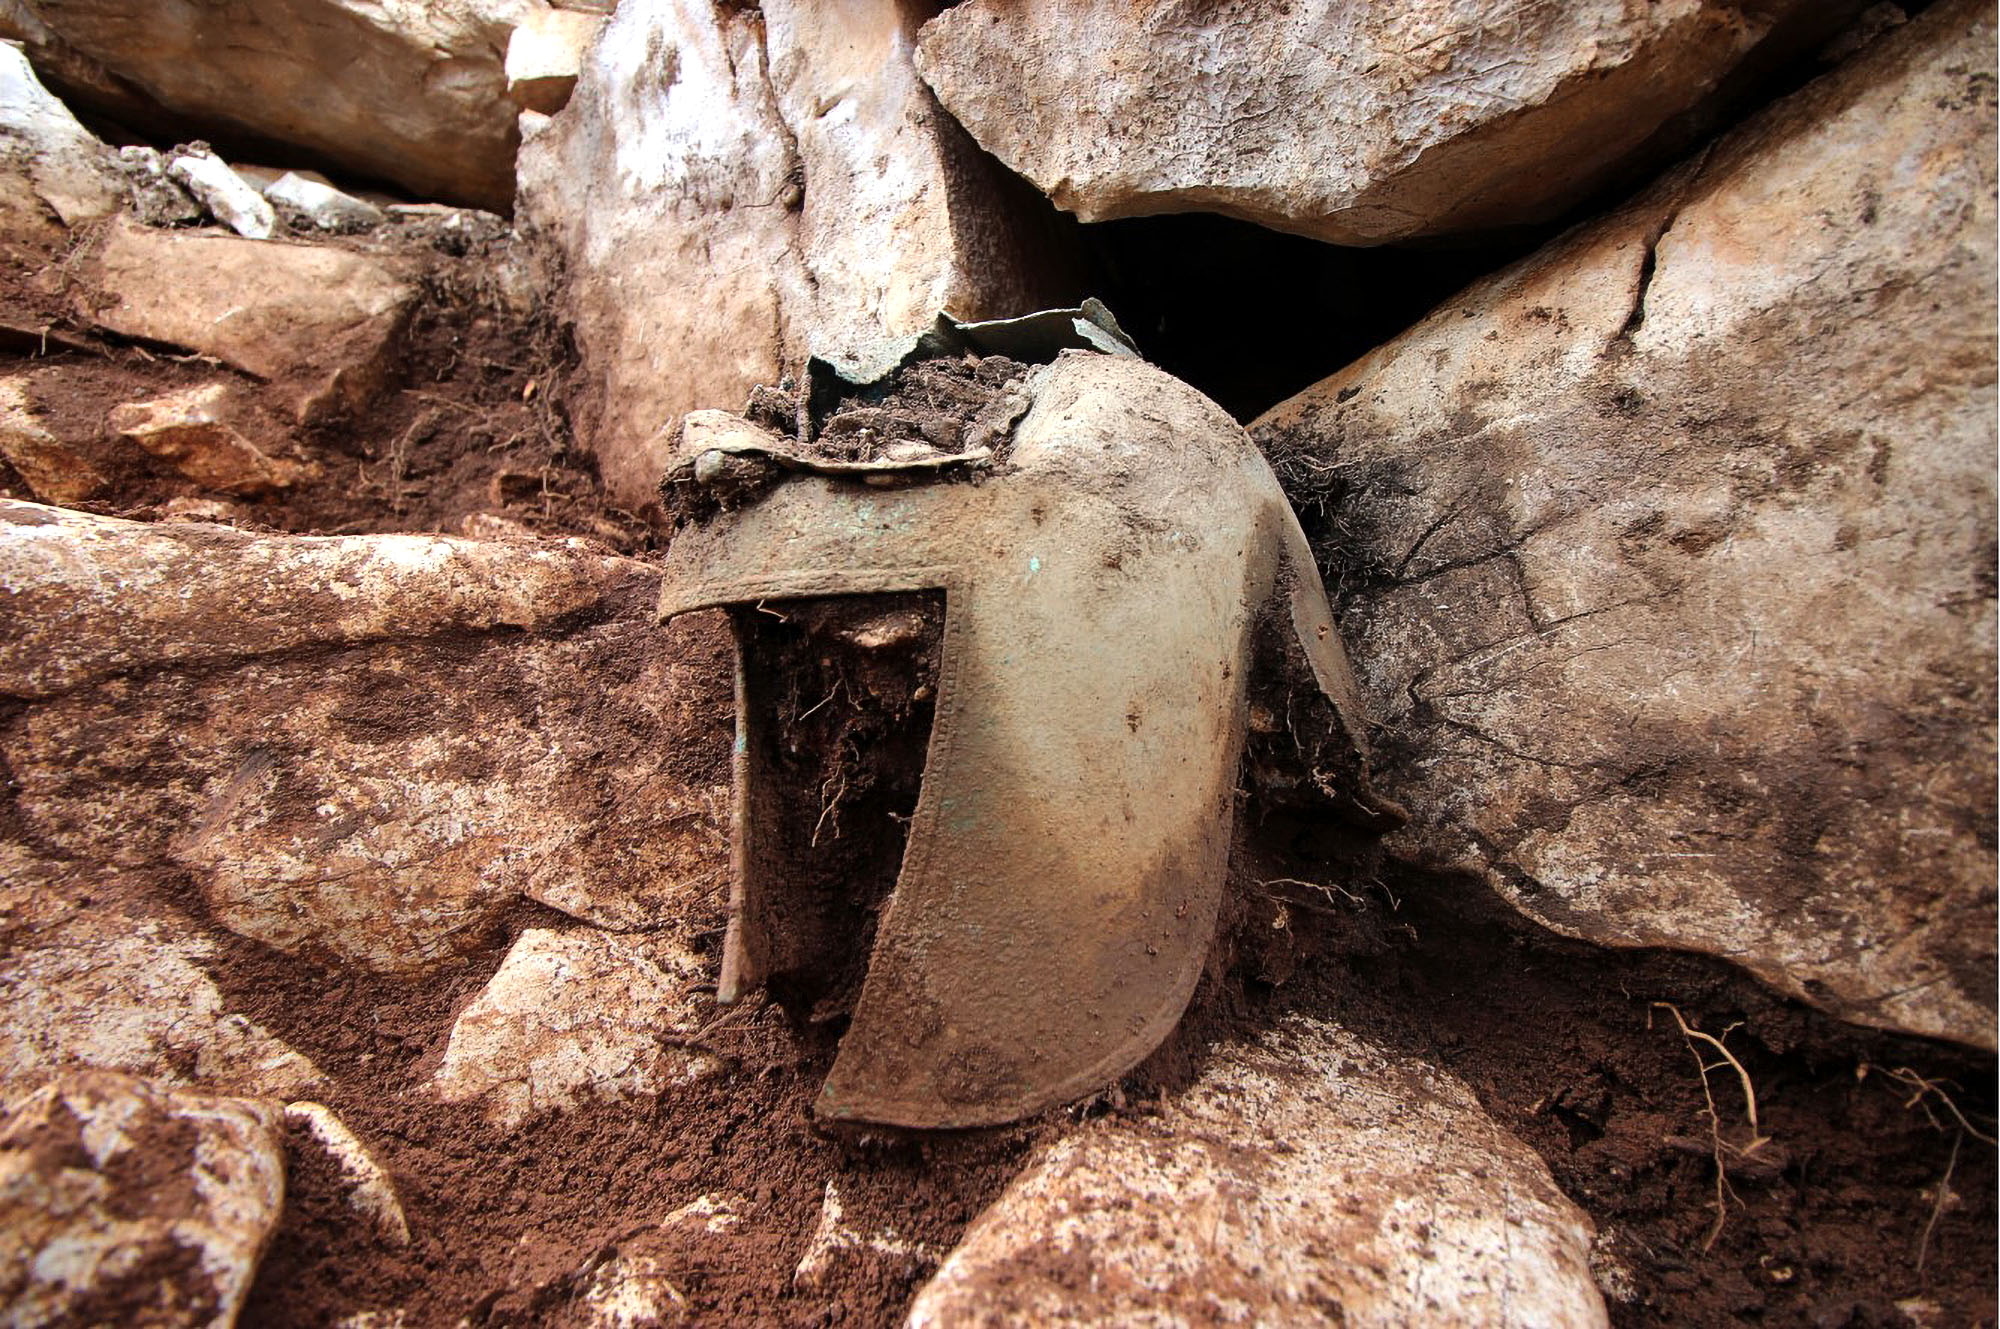 VIDEO: Scientists Find Ancient Greek Warrior Buried With His Helmet On